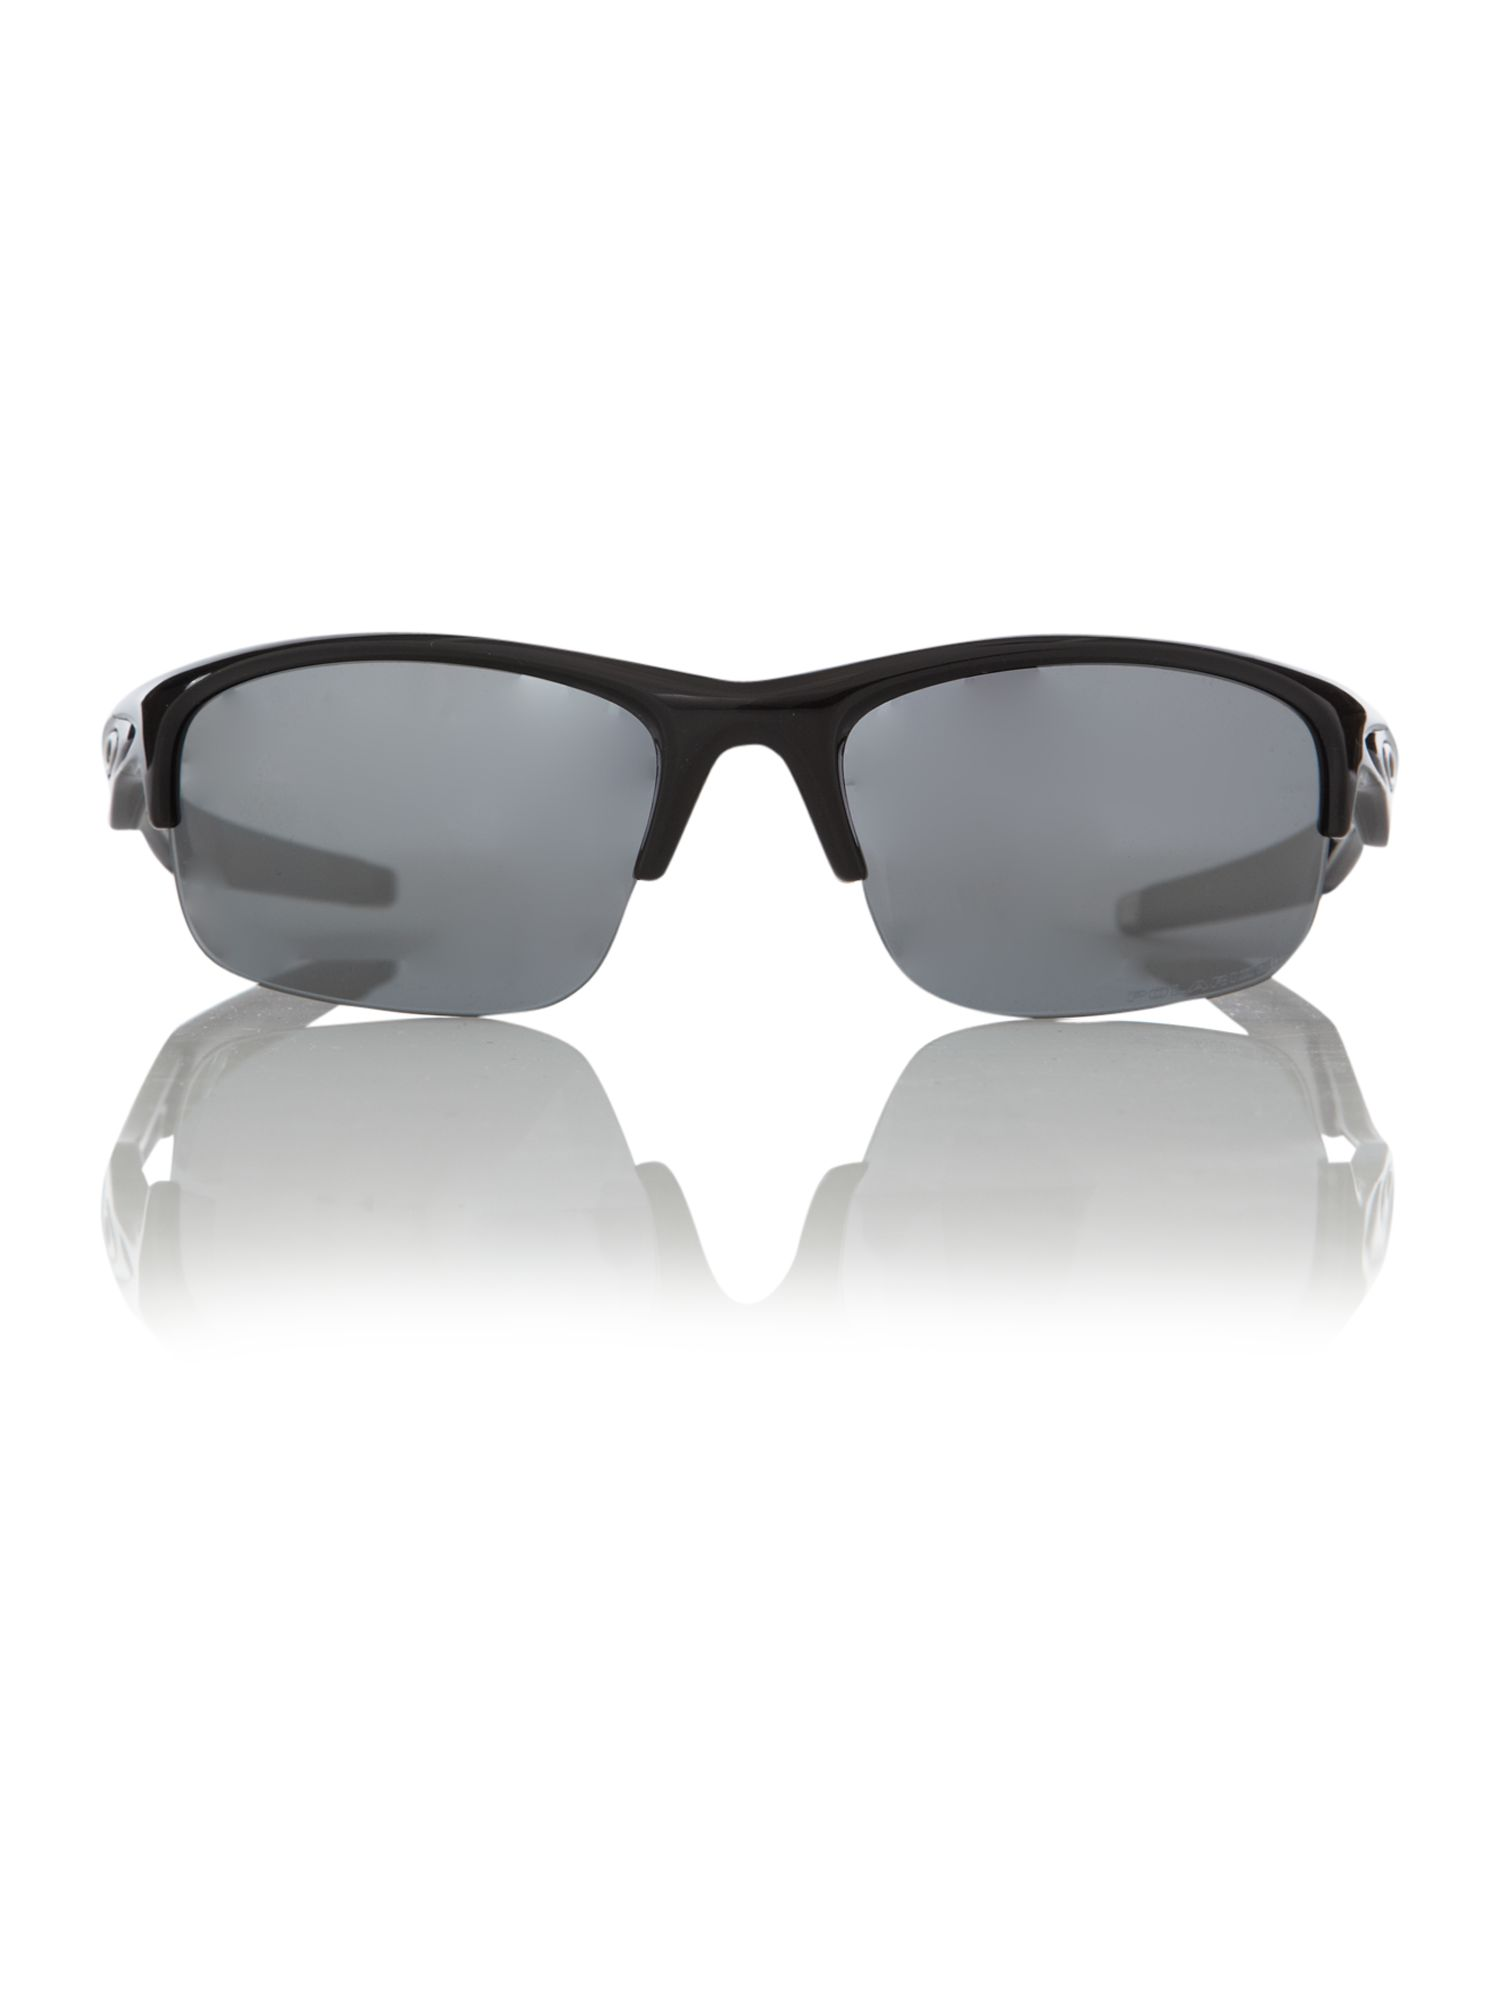 Mens OO9164 Bottle Rocket Polar Black Sunglasses